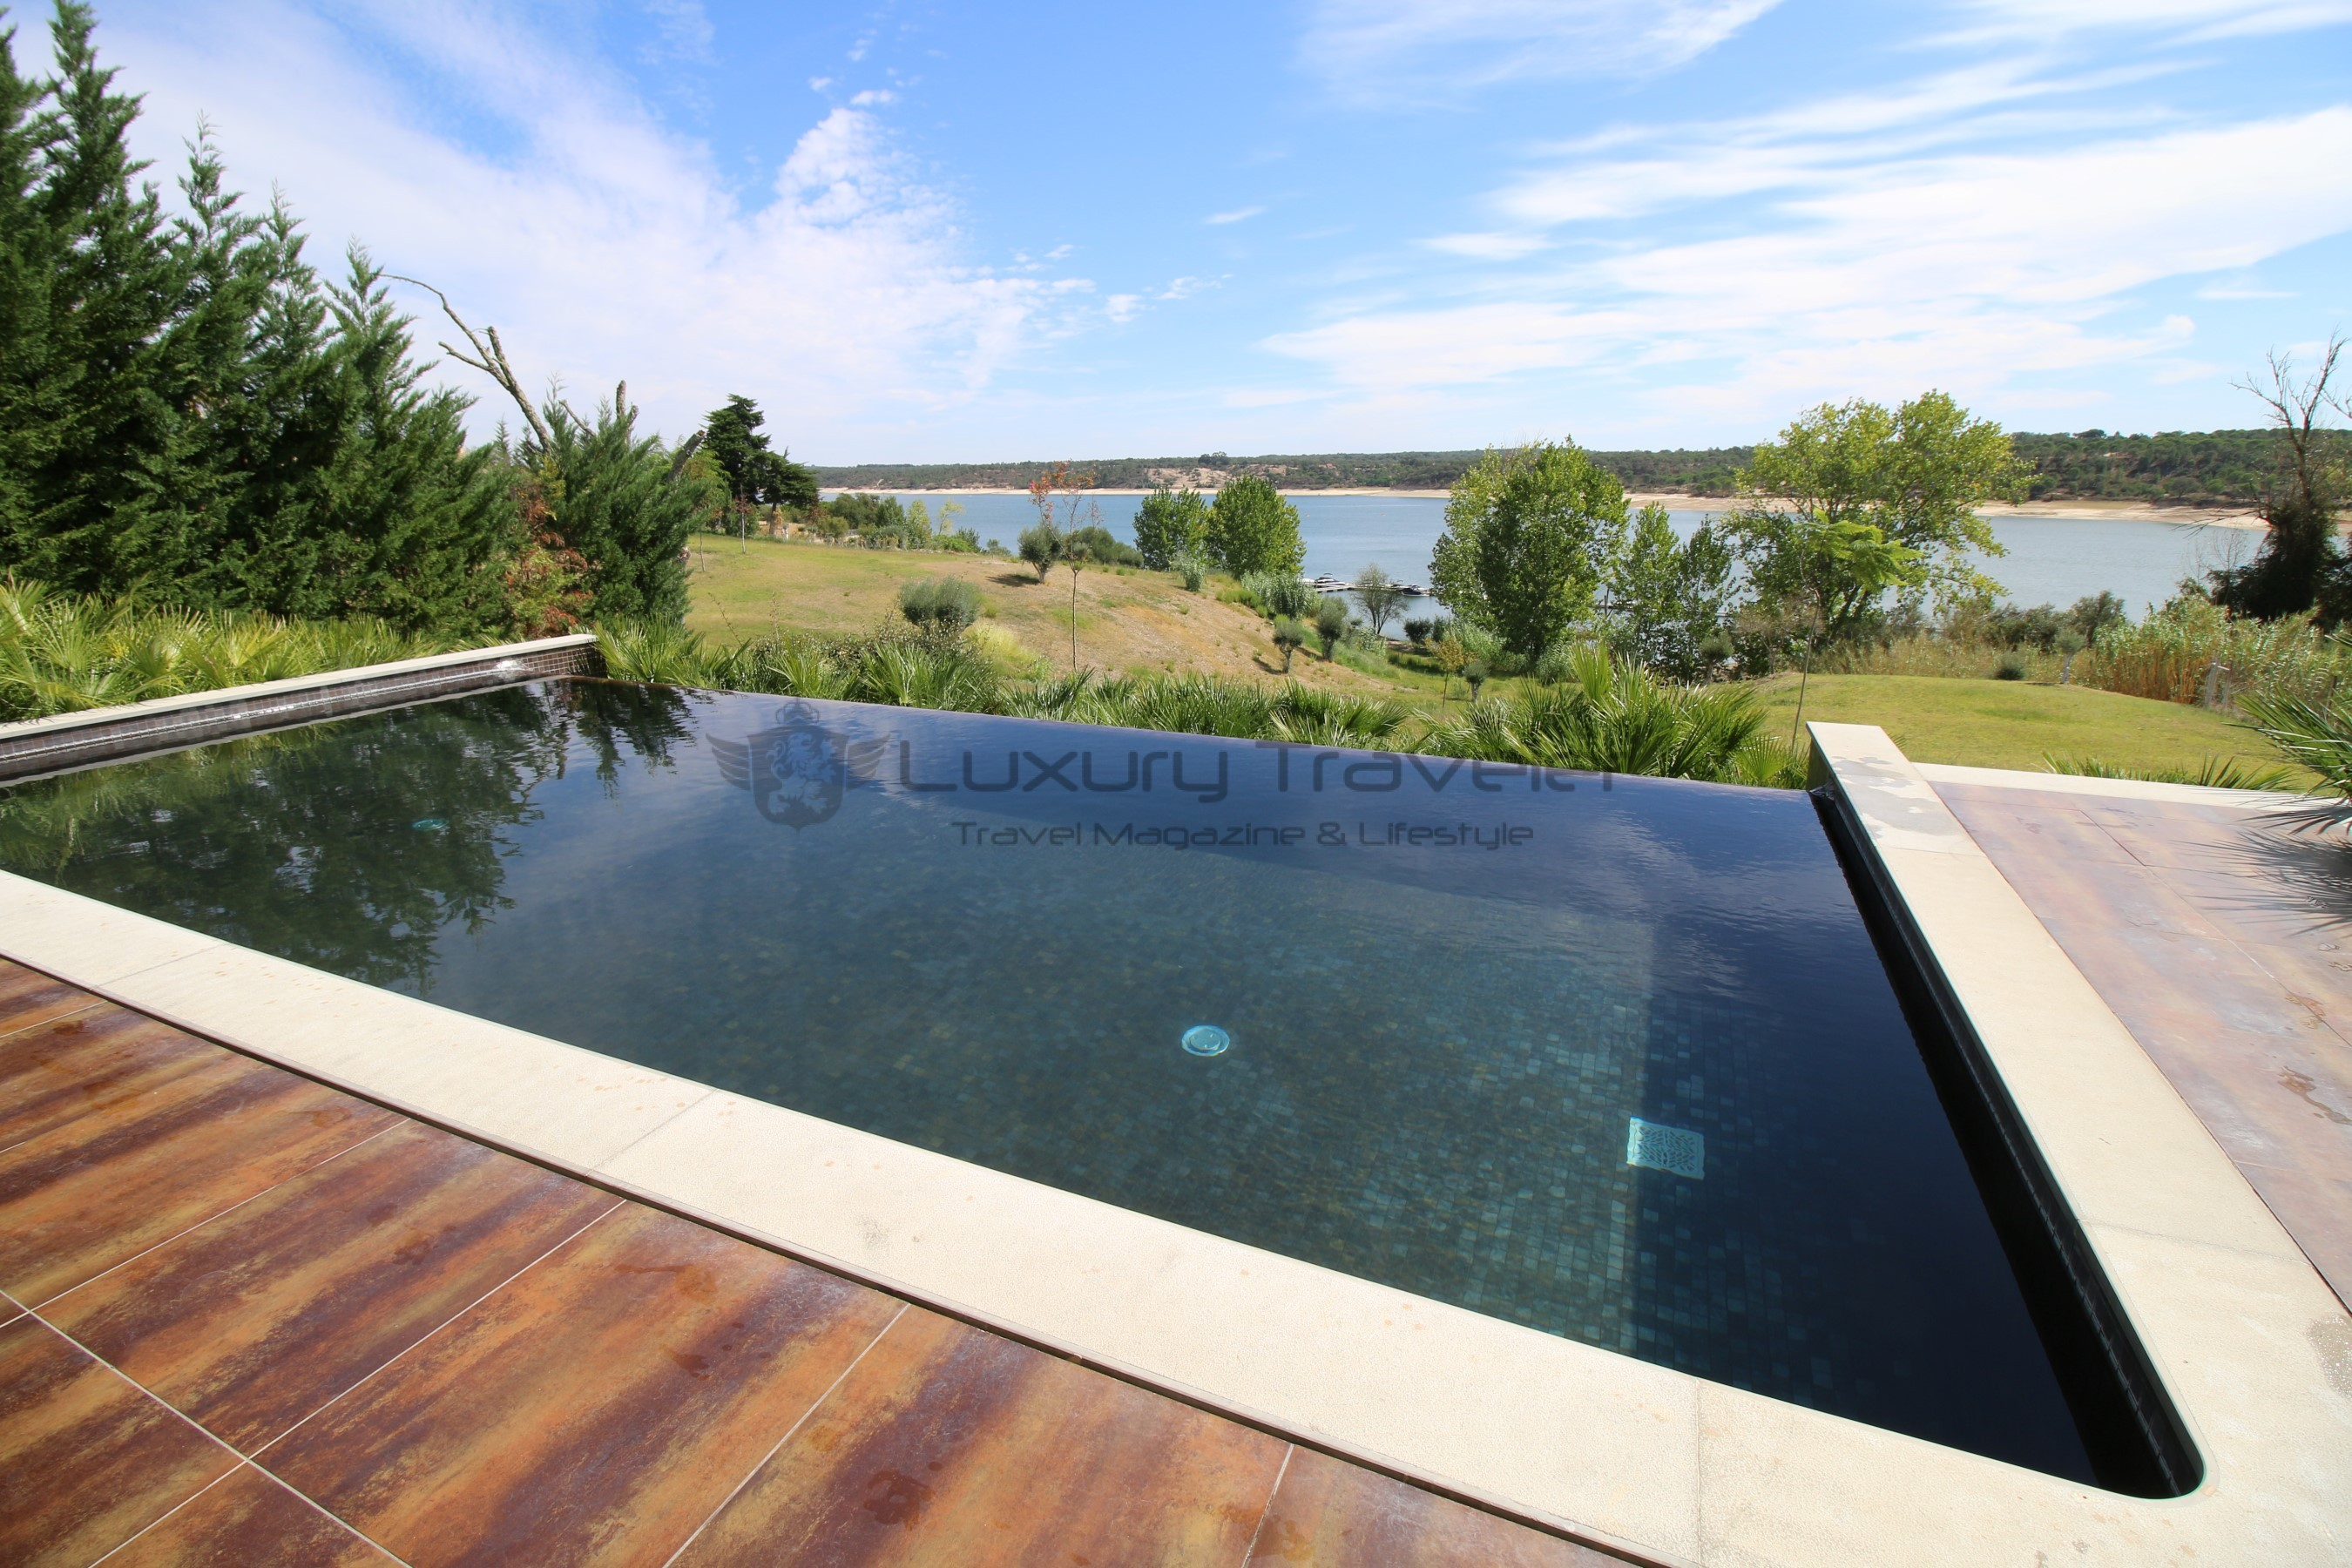 Villas_Lago_Montargil_Portugal_Luxury_Hotel_Pool